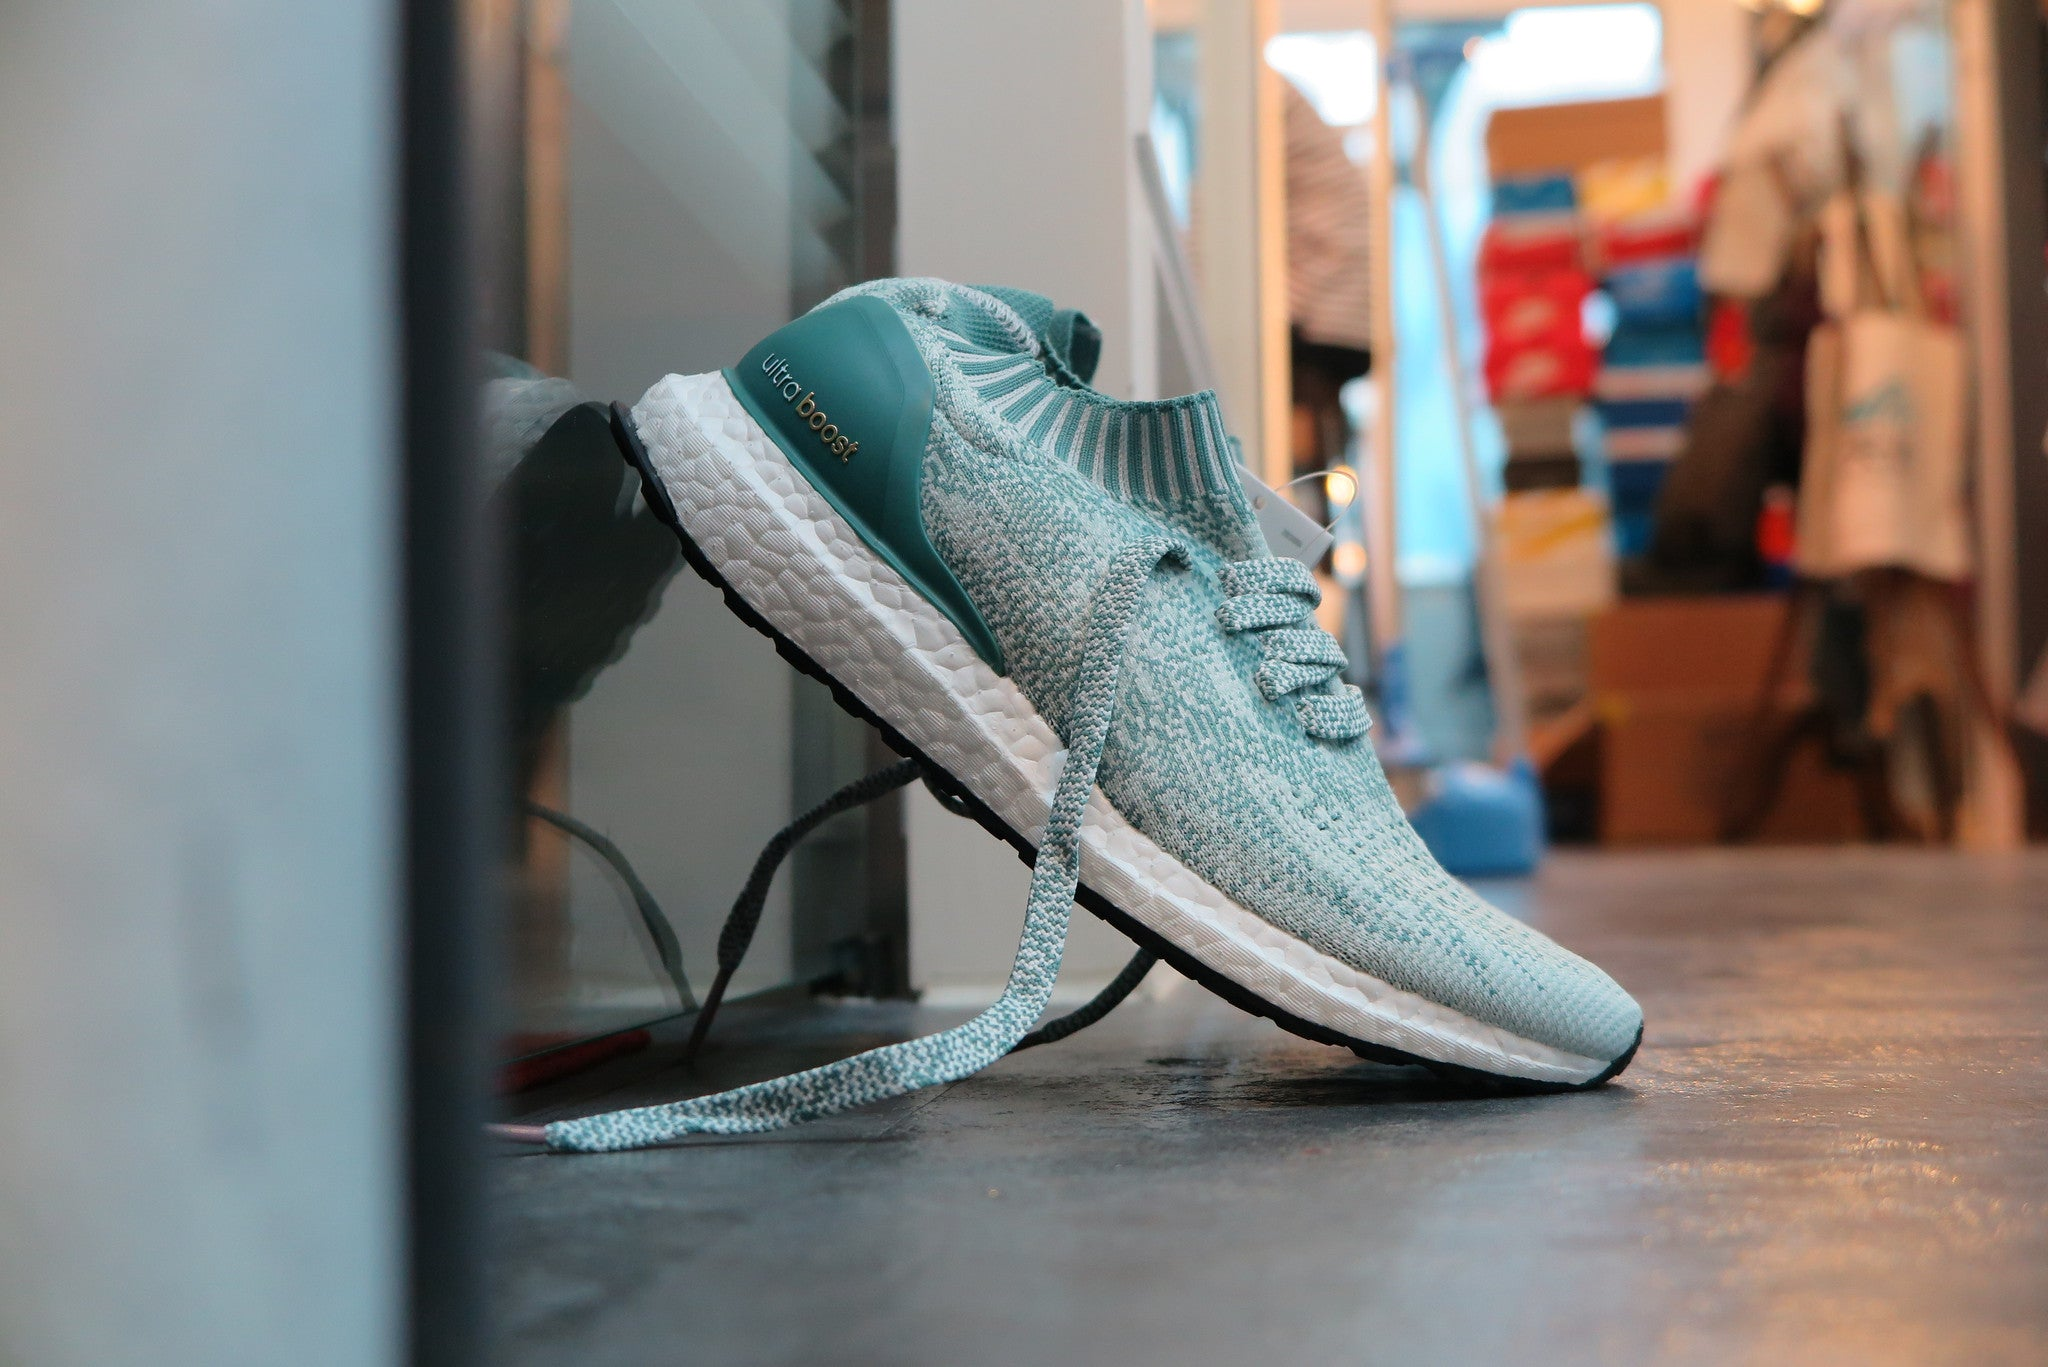 180829bade5f3 ... core black c37b3 dcc2b  authentic grey bb0773 adidas ultra boost uncaged  crystal white 20085 90c73